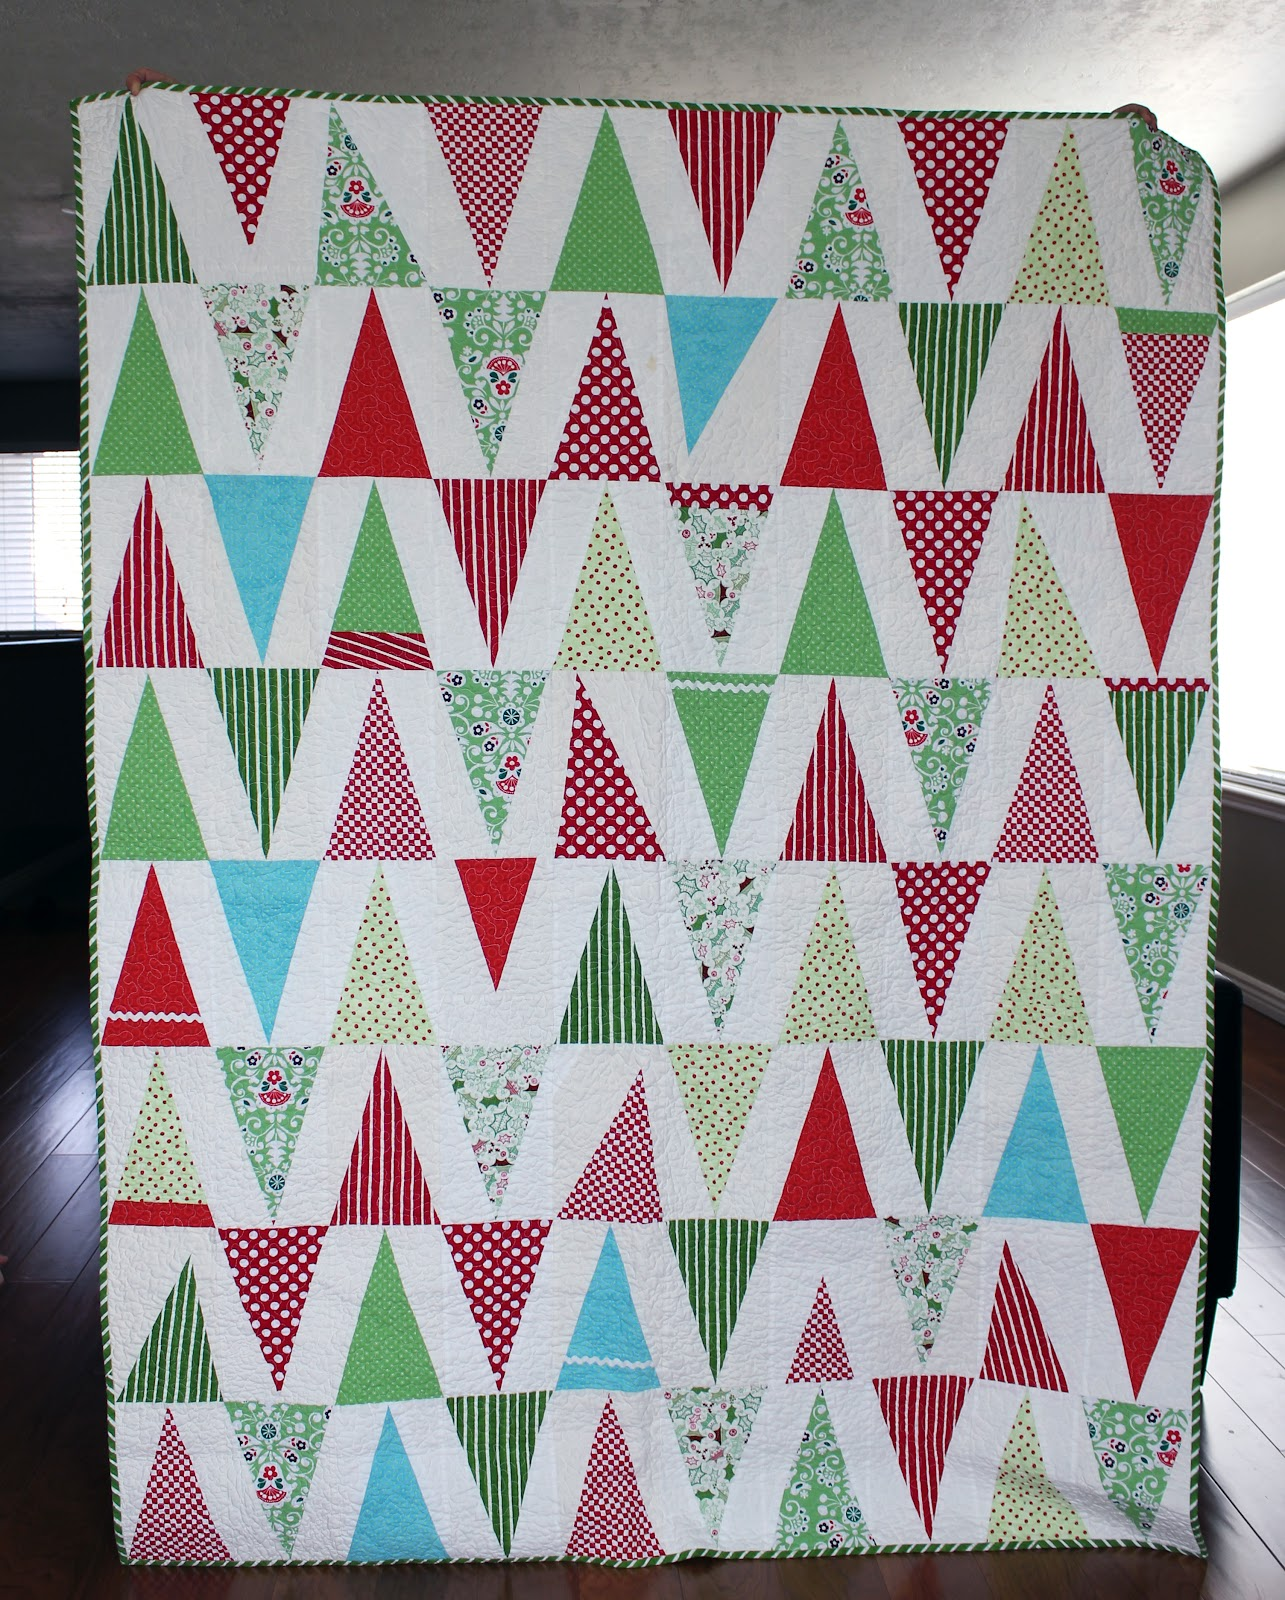 Elf Patterns For Paper http://www.abrightcorner.com/2011/06/elf-hats-block-tutorial.html